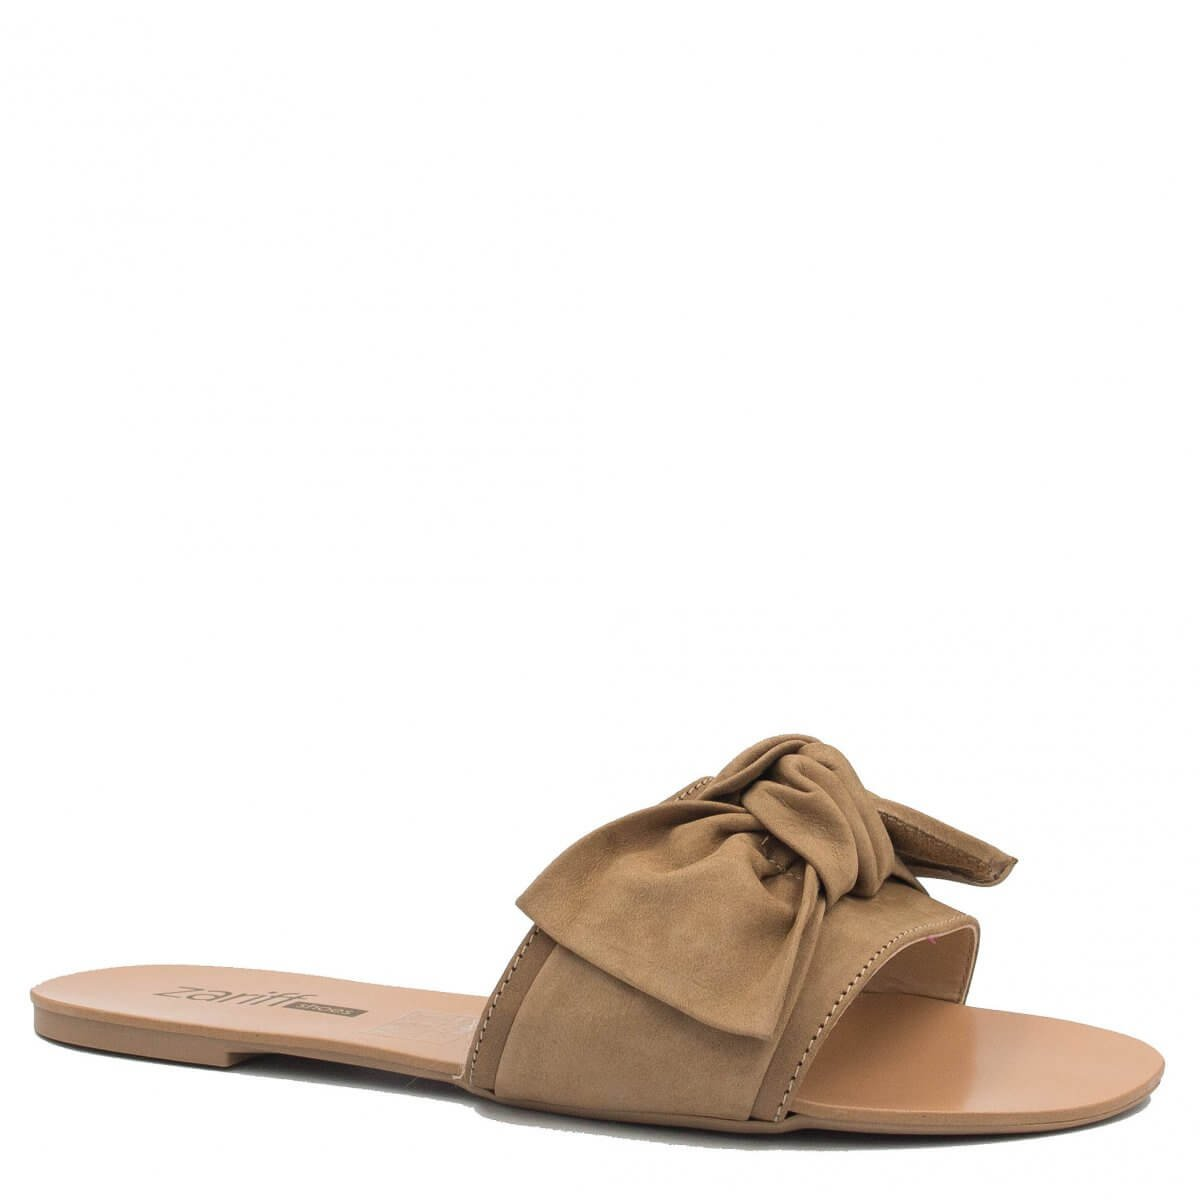 Rasteira Zariff Shoes Slide Laço Nude